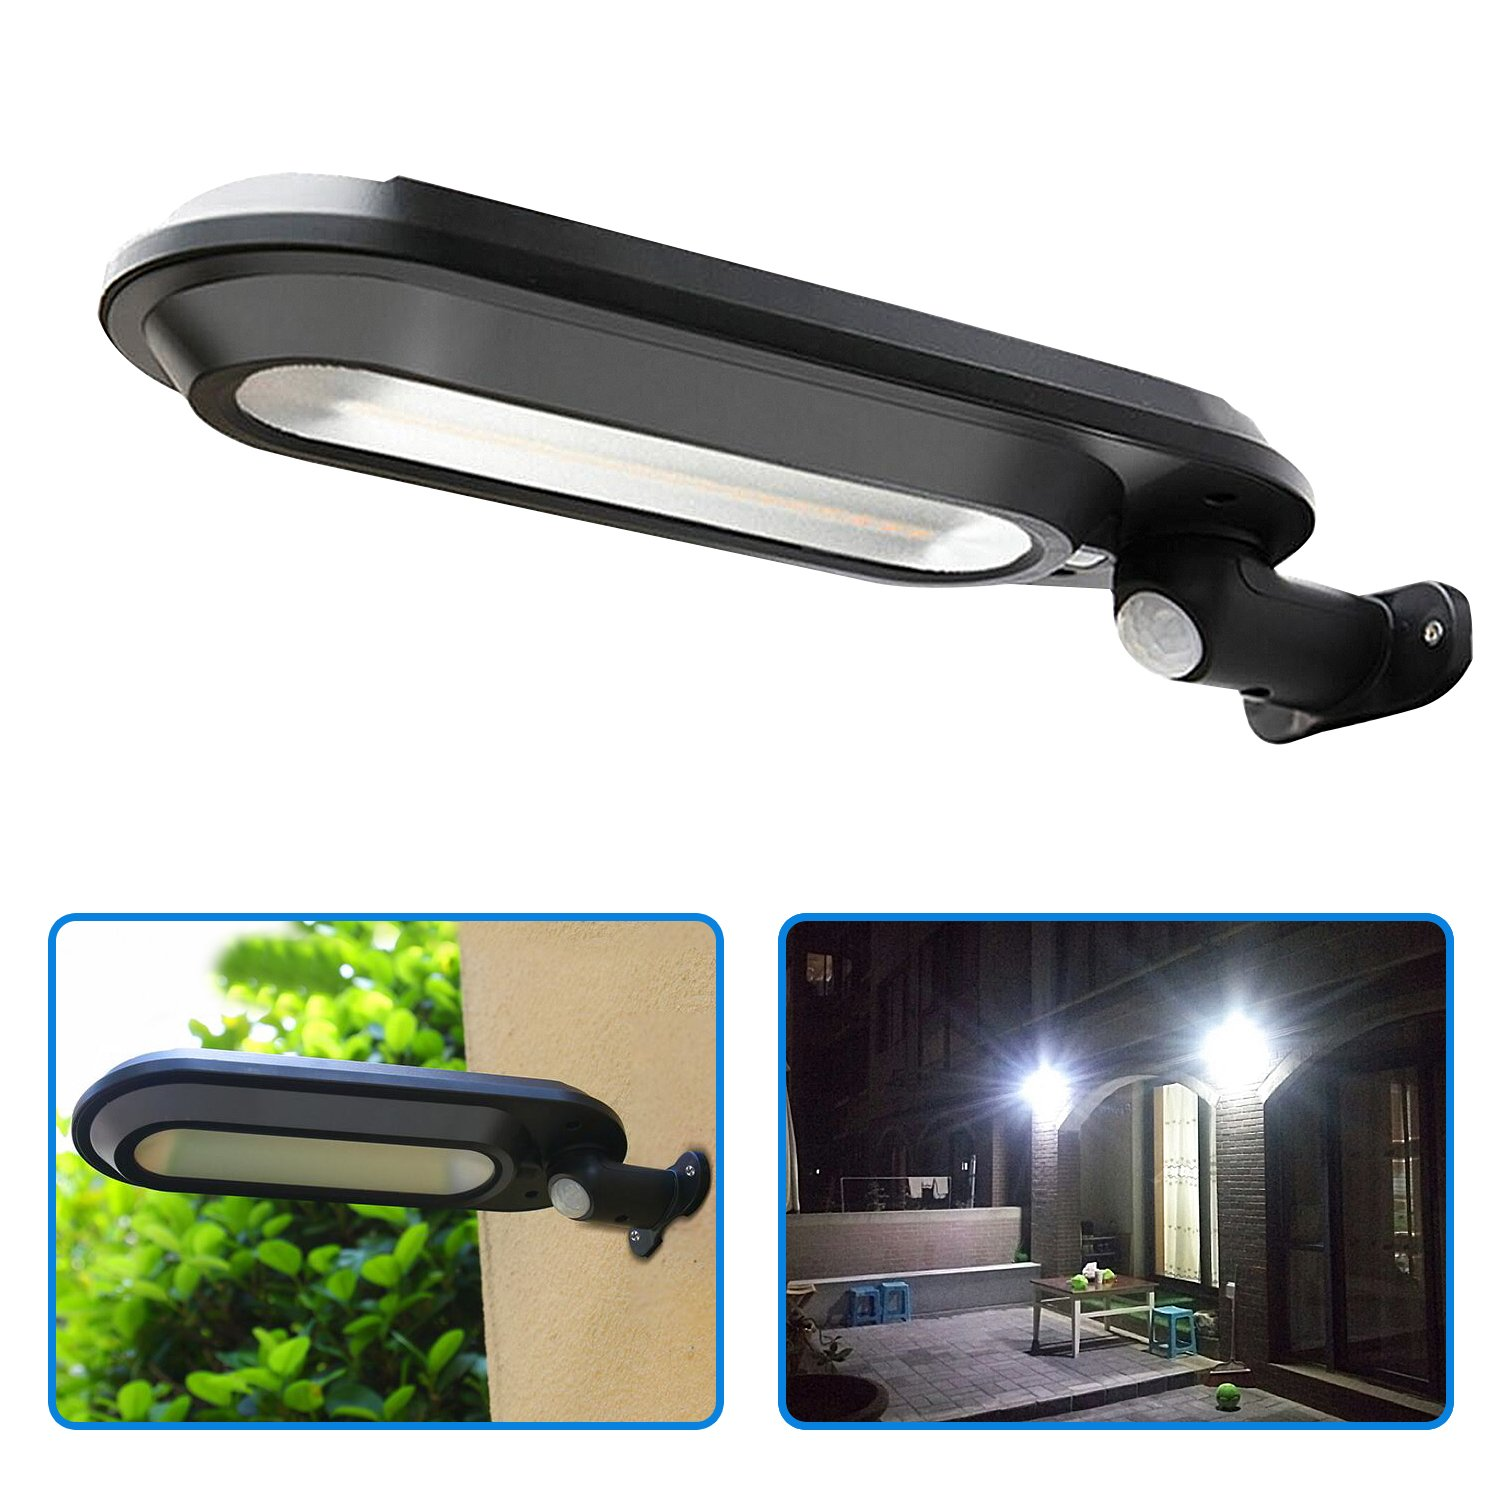 Solar Lights Outdoor Super Bright 18 LED Solar Motion Sensor Security Lights with Rotary Lamp Head 4 Working Mode Waterproof for Pathway Driveway Garden Wall Deck Yard Patio Stairway (Black)